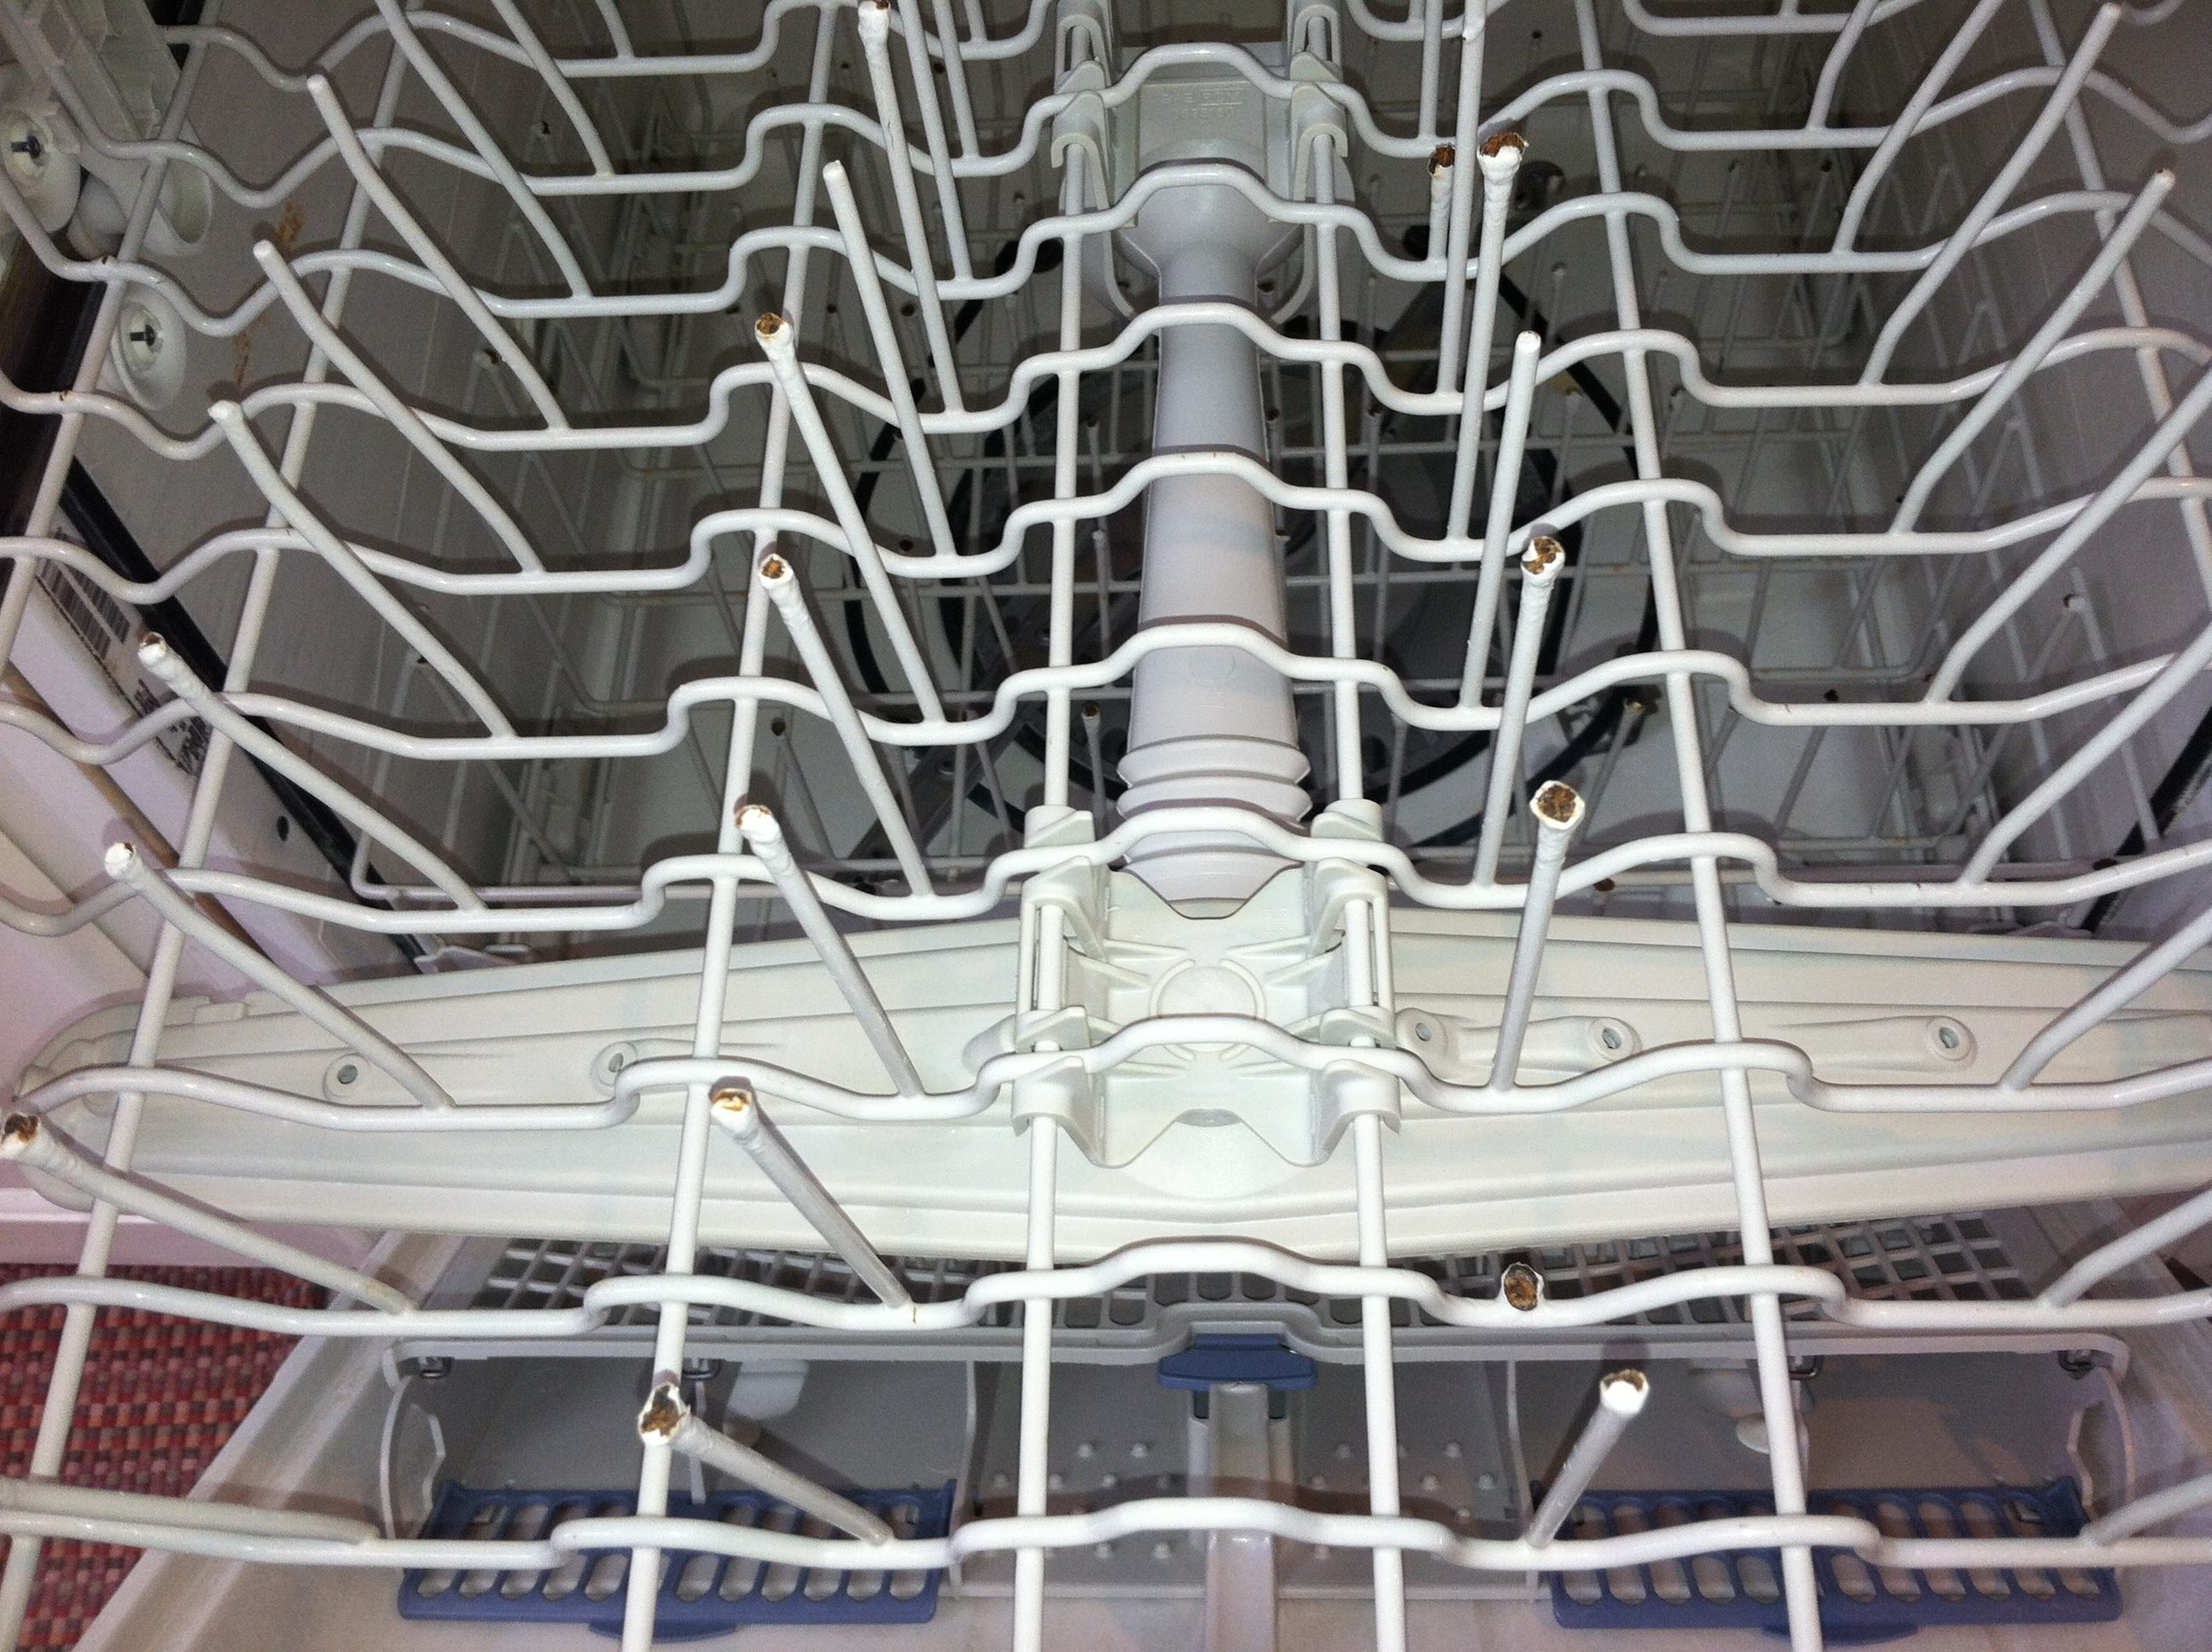 How To Quiet A Dishwasher Top 378 Reviews And Complaints About Whirlpool Dishwashers Page 7